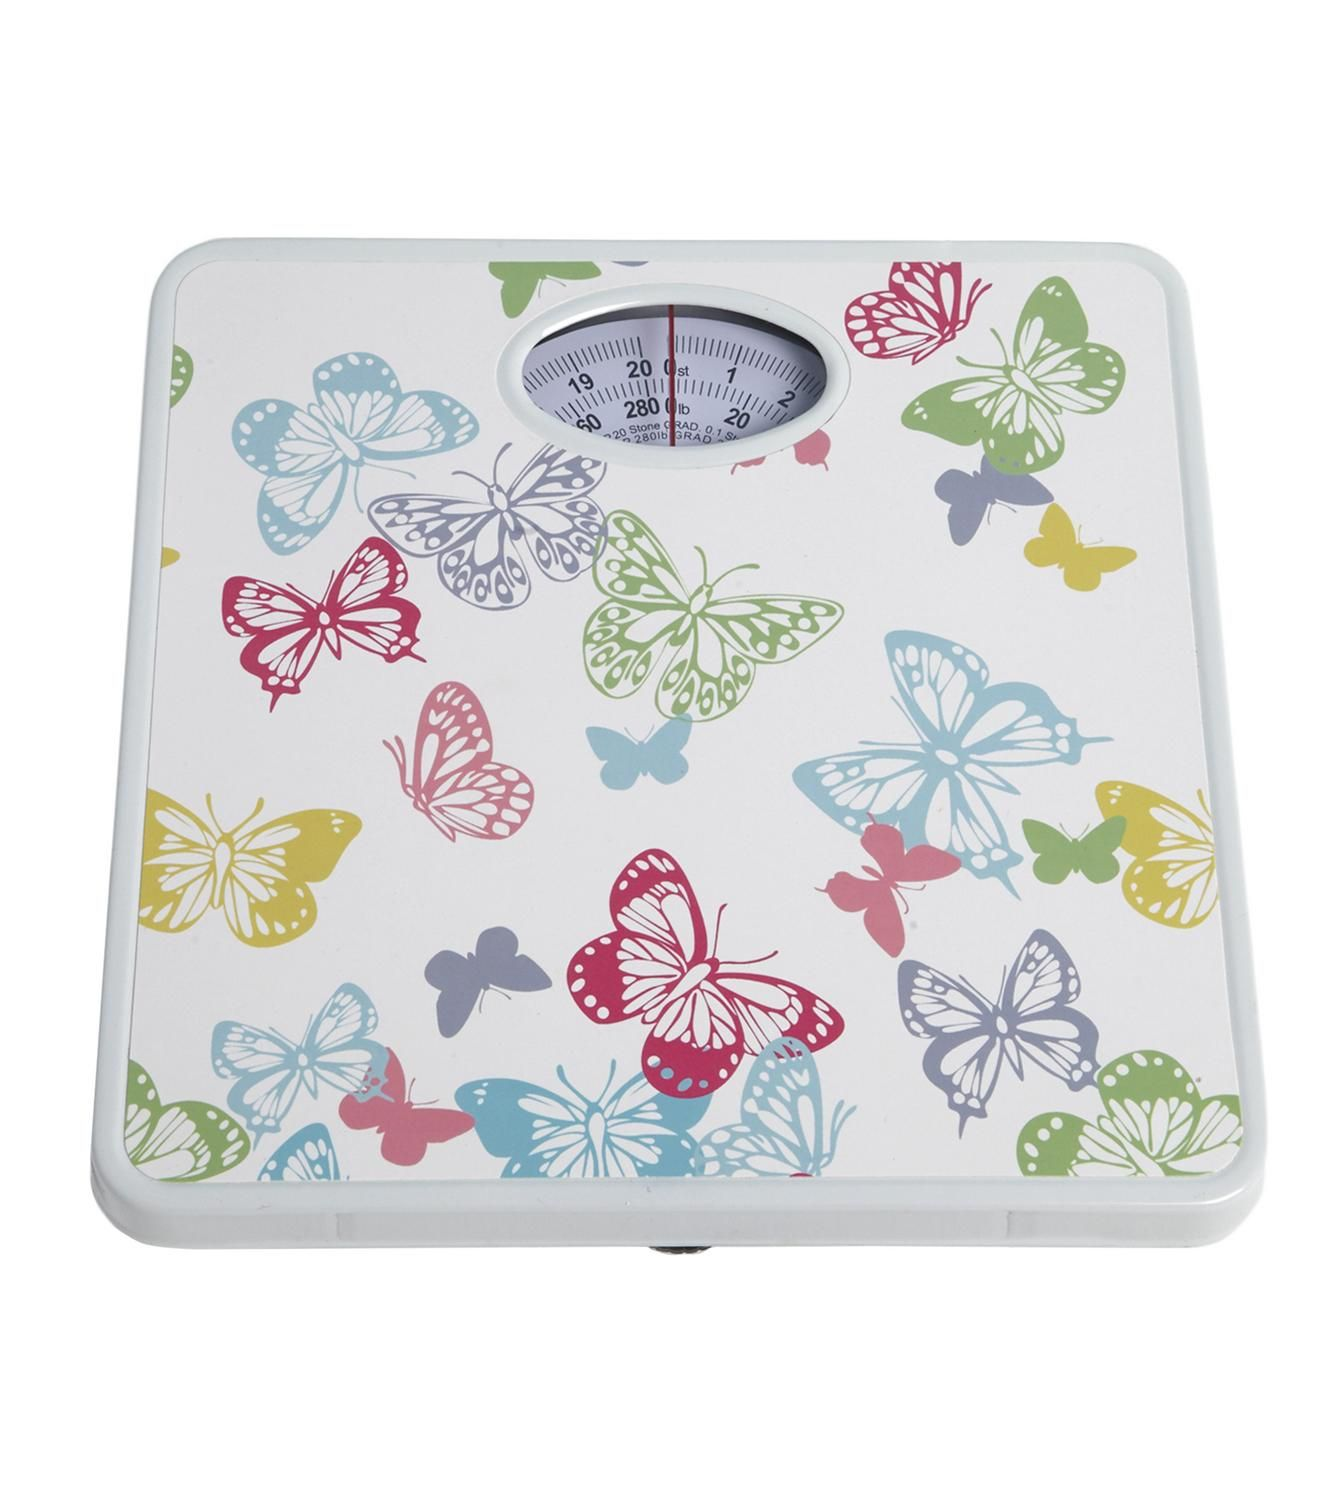 3.99 Studio Image for Butterfly Bright Bathroom Scales from studio ...